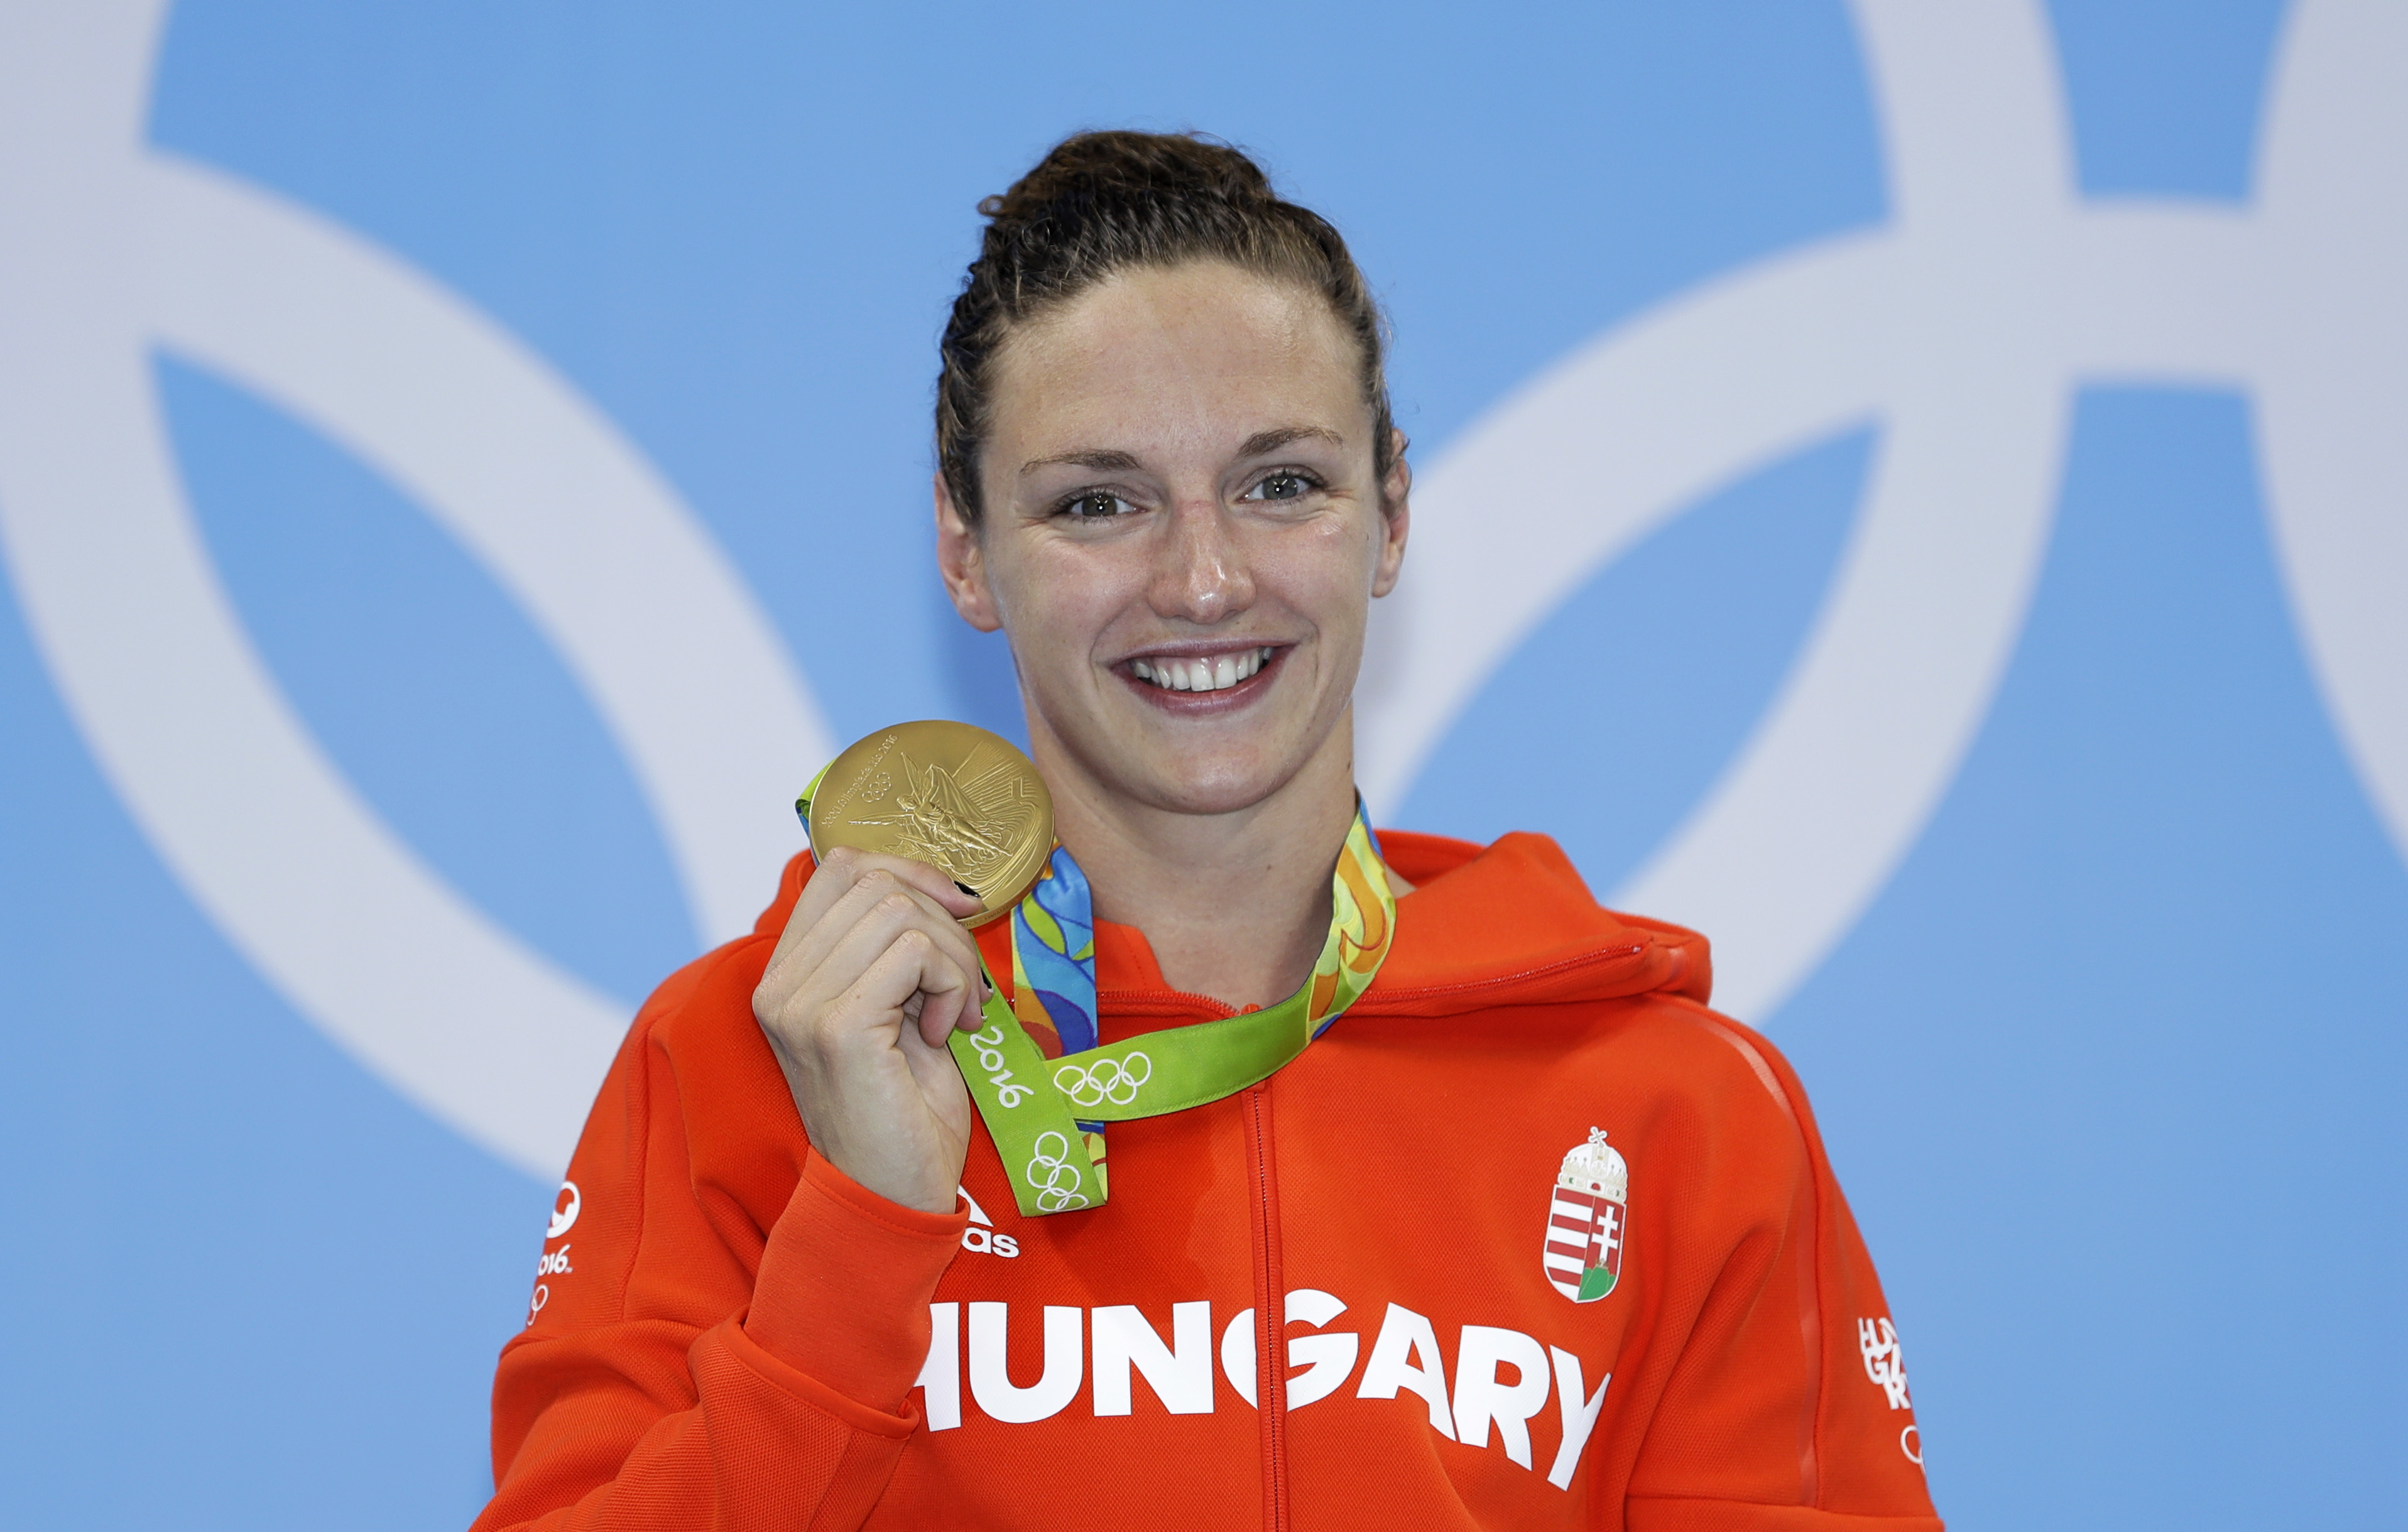 Hungary's Katinka Hosszu shows off her gold medal during the ceremony for the women's 400-meter individual medley final during the swimming competitions at the 2016 Summer Olympics, Saturday, Aug. 6, 2016, in Rio de Janeiro, Brazil. (AP Photo/Michael Sohn